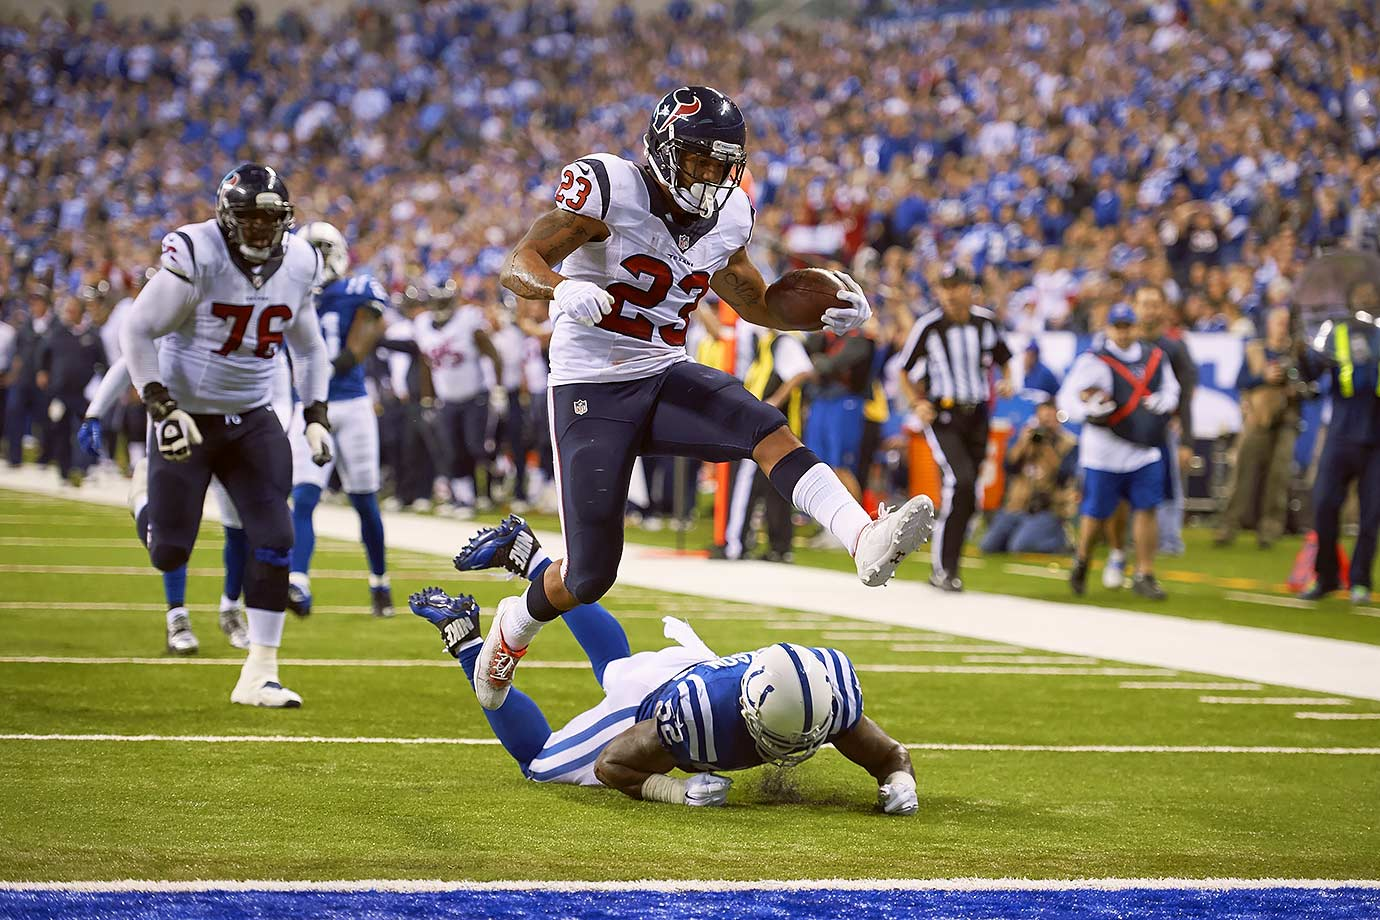 After seven years and four Pro Bowl appearances, the Texans cut ties with running back Arian Foster, who only played in four games in 2015. Foster will leave the franchise as the all-time leader in rushing yards and touchdowns. Foster was originally signed as an undrafted free agent in 2009 and became the starter in 2010, when he rushed for 1,616 yards and 16 touchdowns.